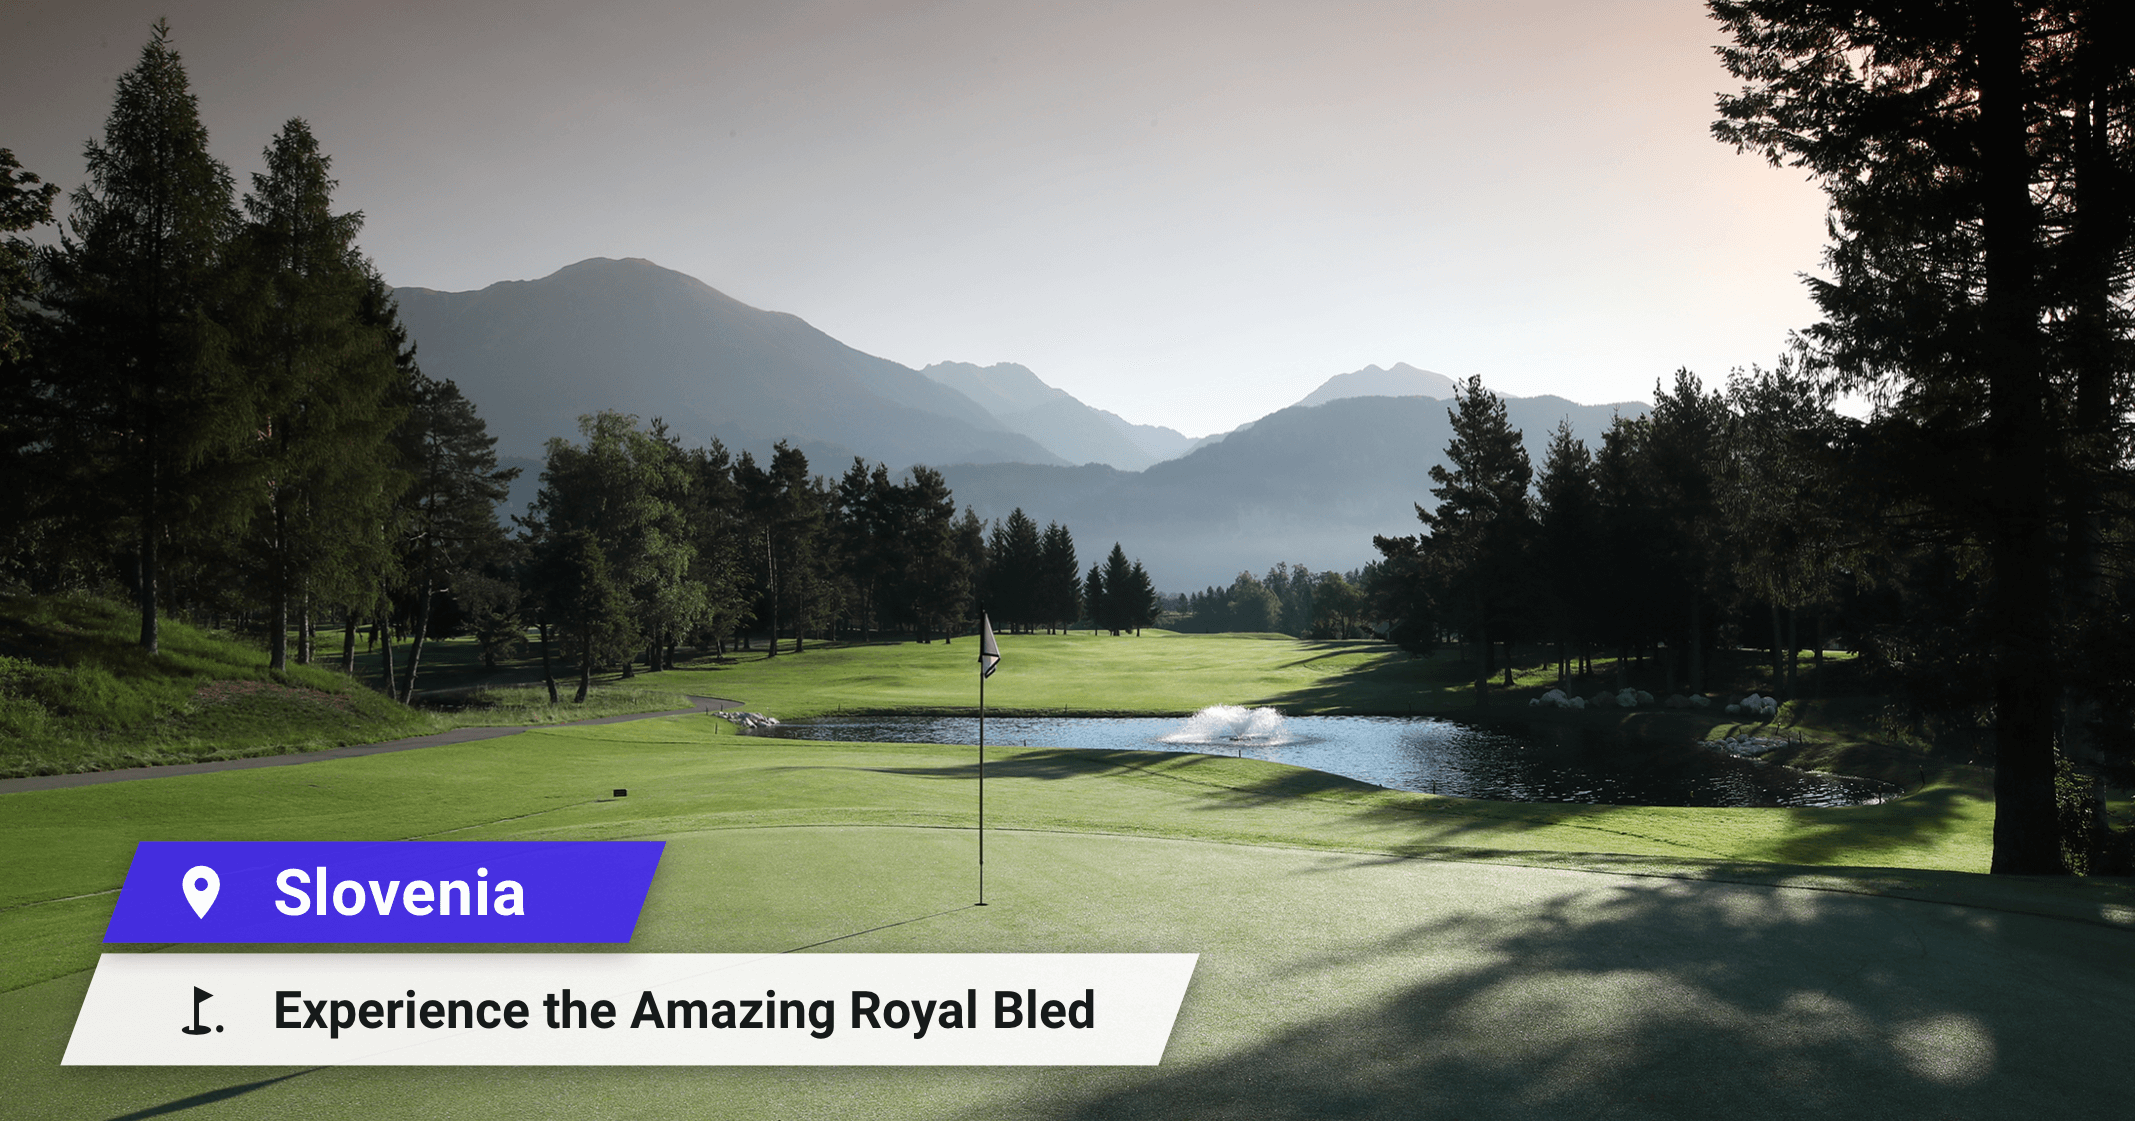 Experience the Amazing Royal Bled